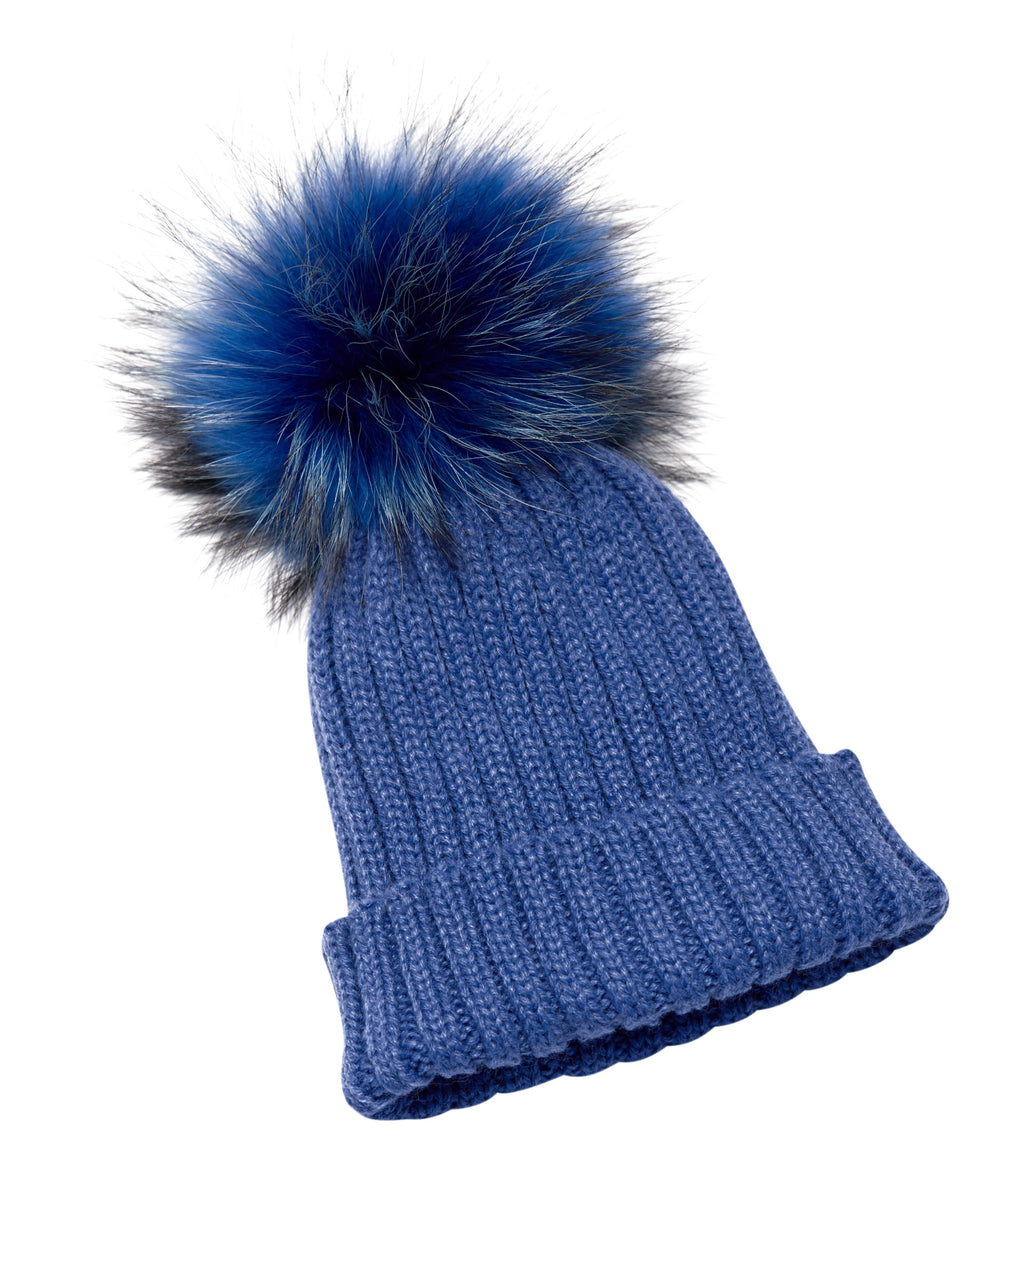 Kids's Electric Blue Raccoon Fur Pom Pom Hat - Electric Blue - Pic Pop